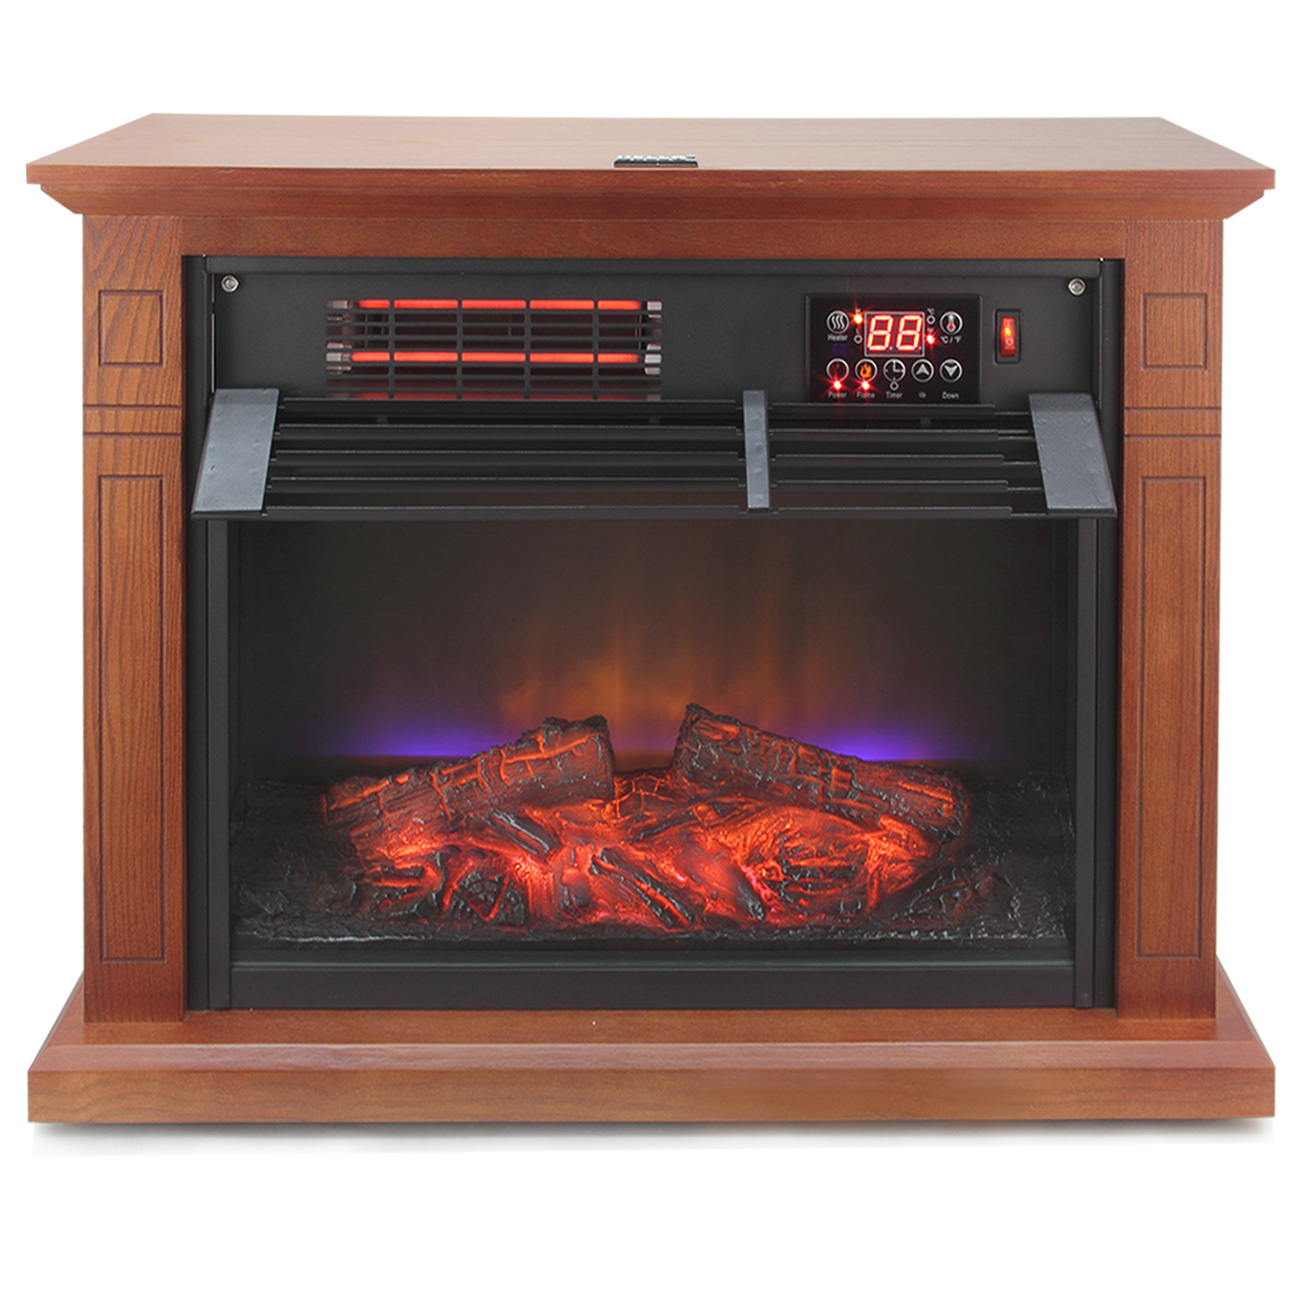 Large Room Electric Quartz Infrared Fireplace Heater Deluxe Mantel 1500 Watt Ebay